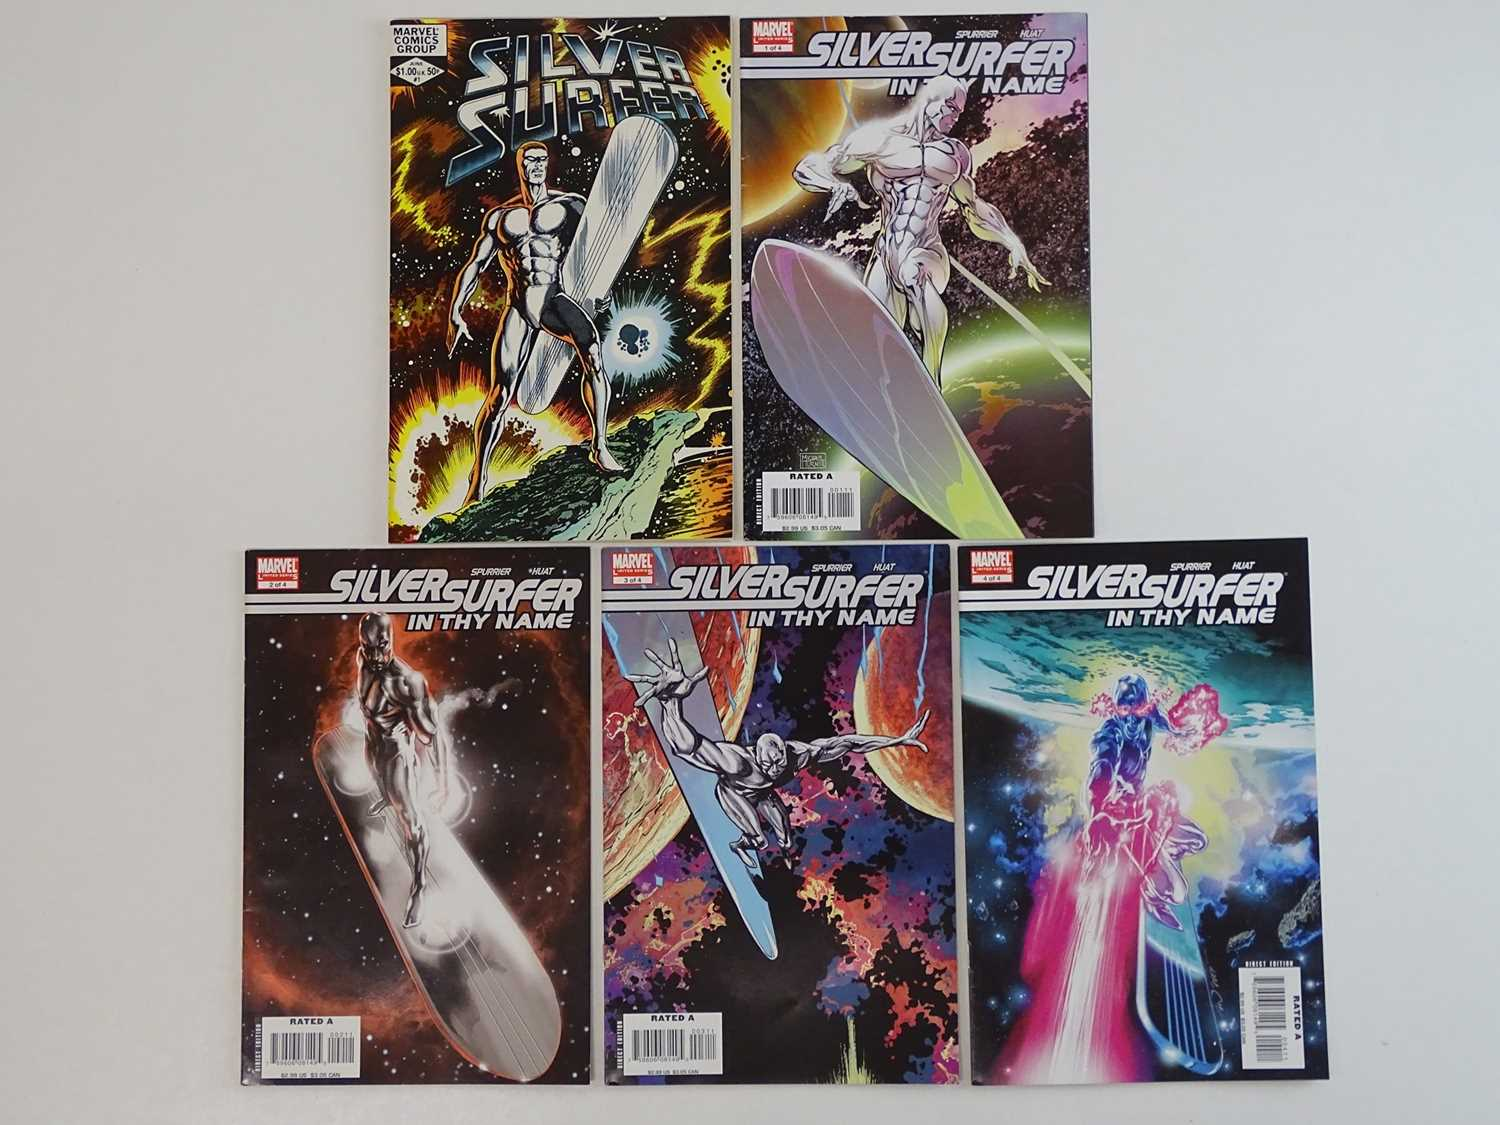 SILVER SURFER LOT - (5 in Lot) - (MARVEL) - Includes SILVER SURFER (1982) #1 + SILVER SURFER: IN THY